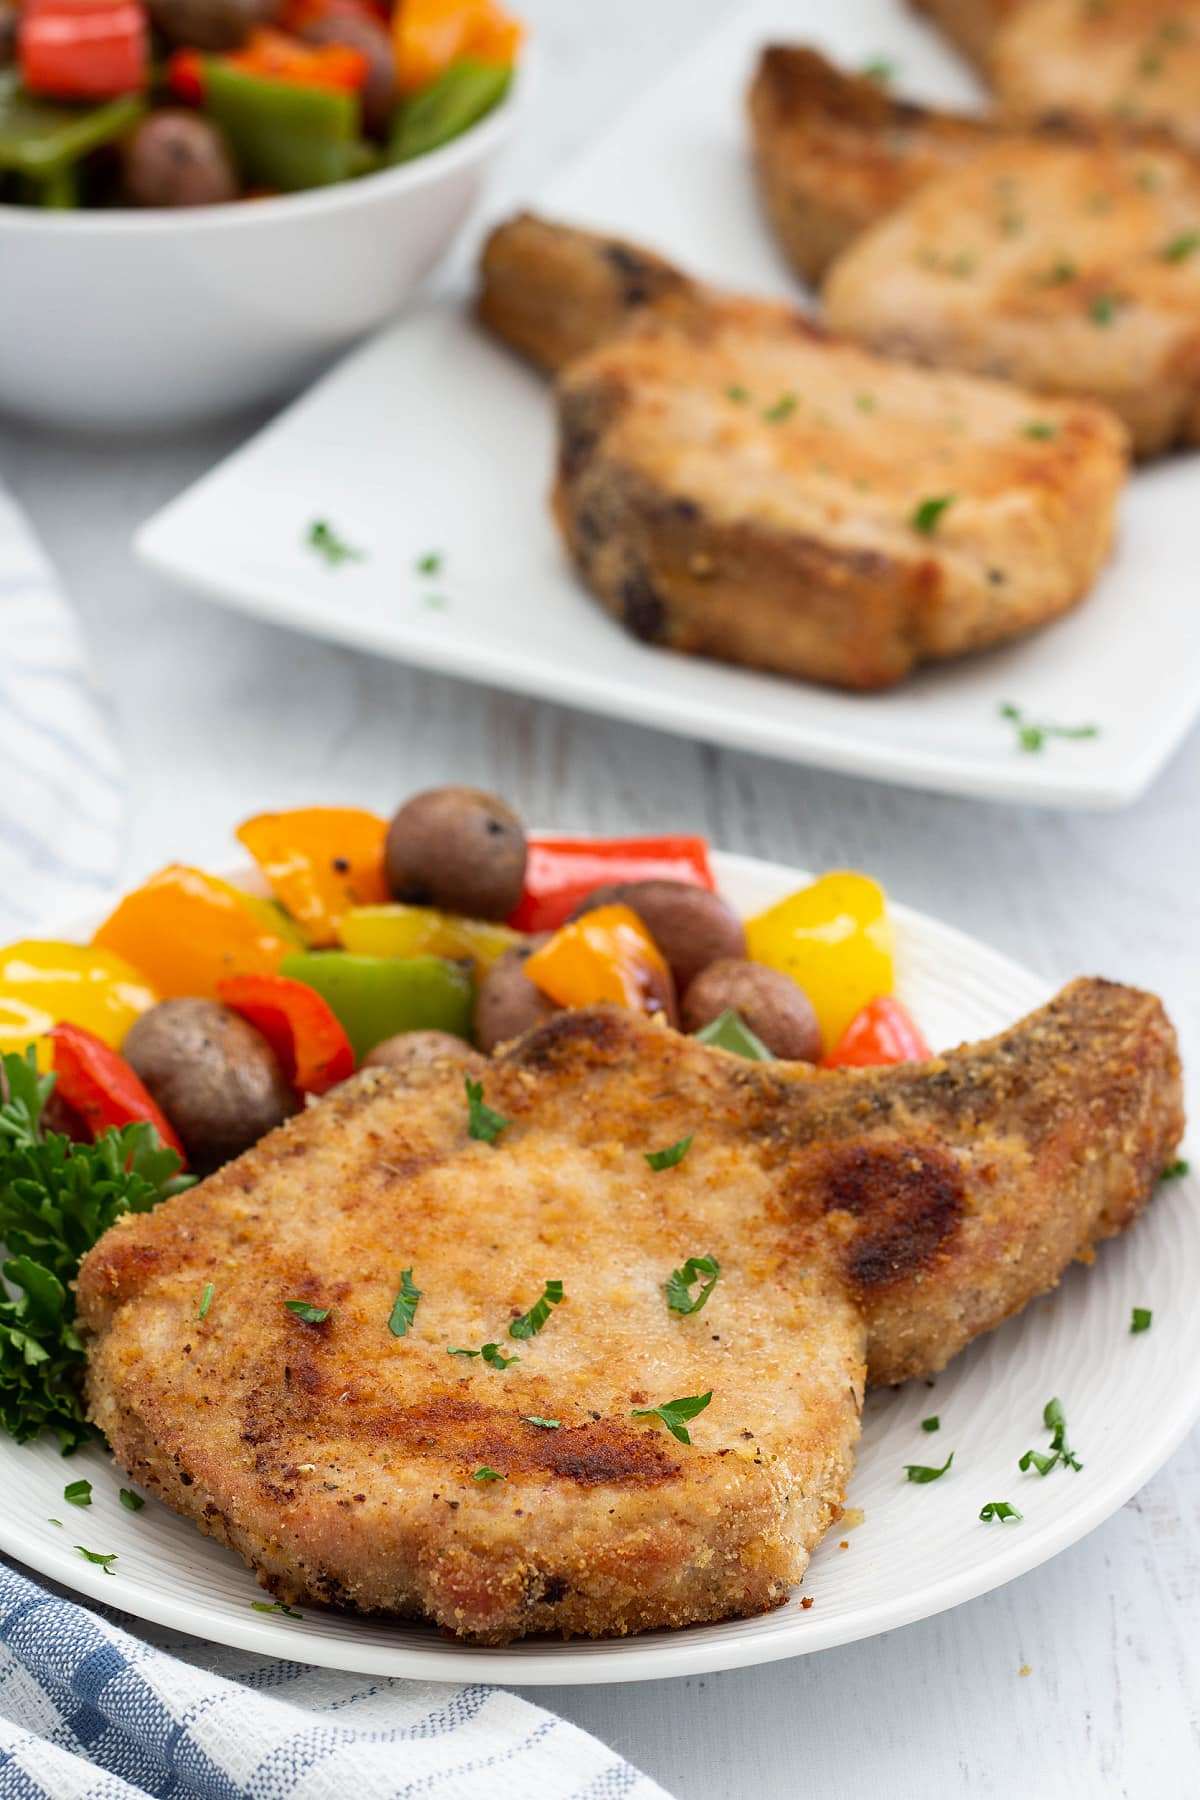 Shake and bake pork chops with vegetables